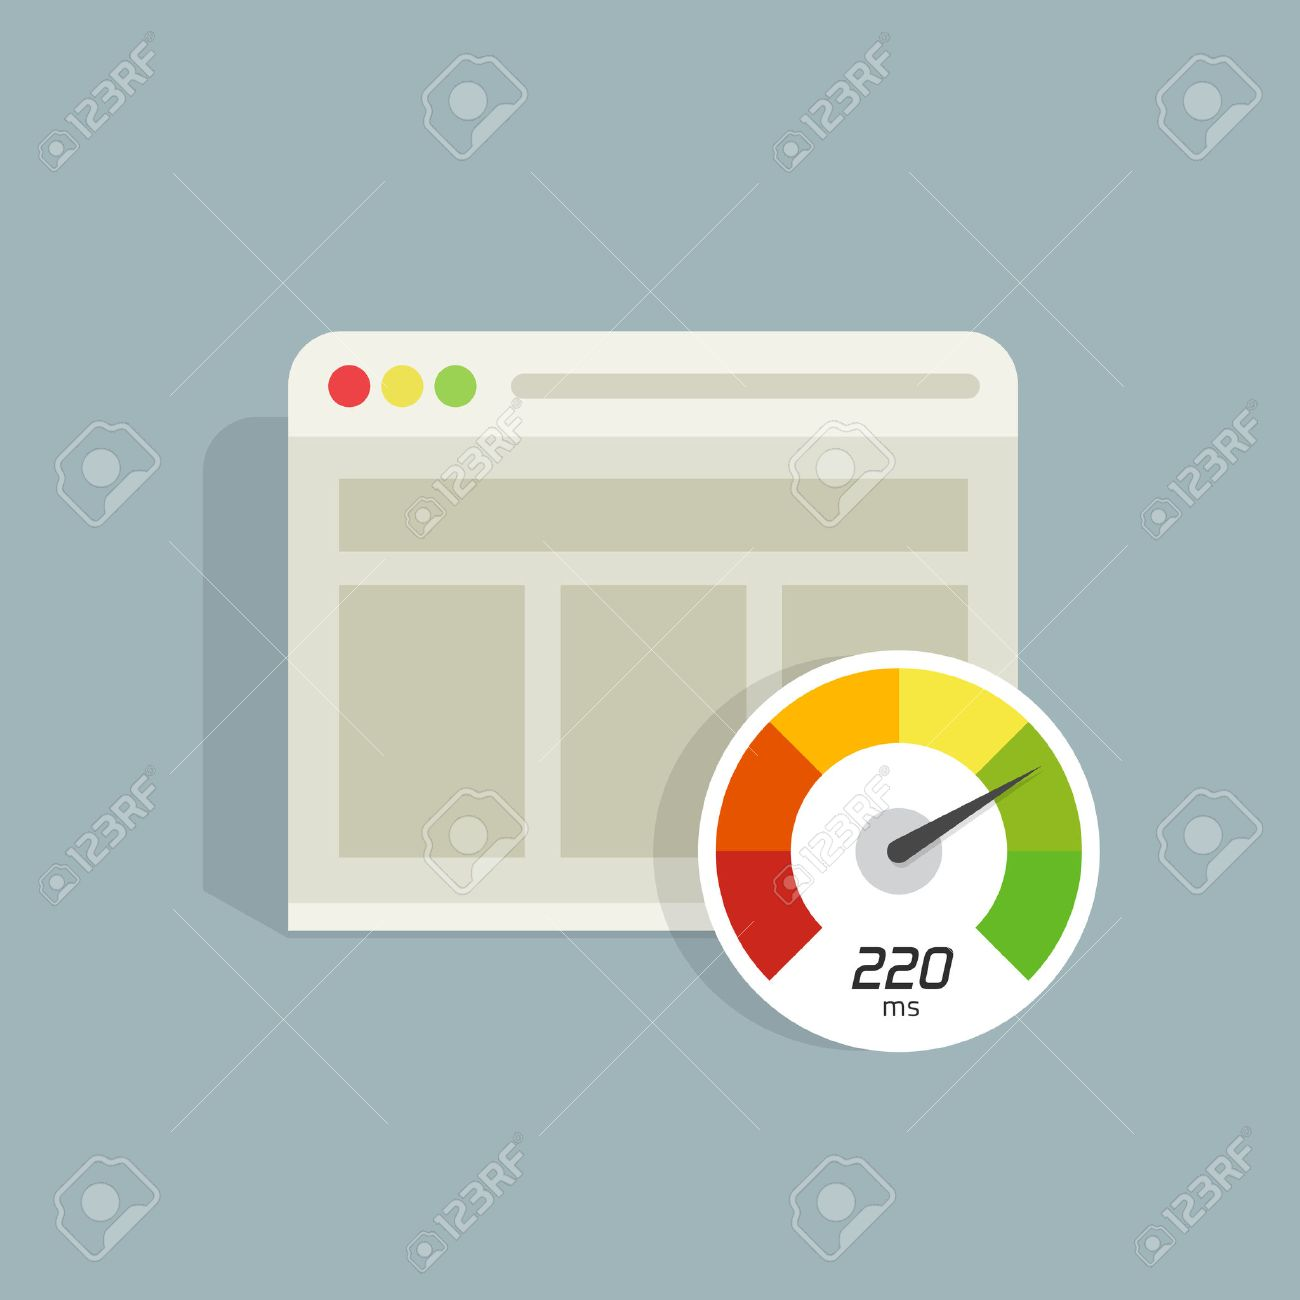 Website speed loading time vector icon isolated, web browser with speedometer test showing fast good page loading time illustration, seo analyzer, optimization, performance - 68408493